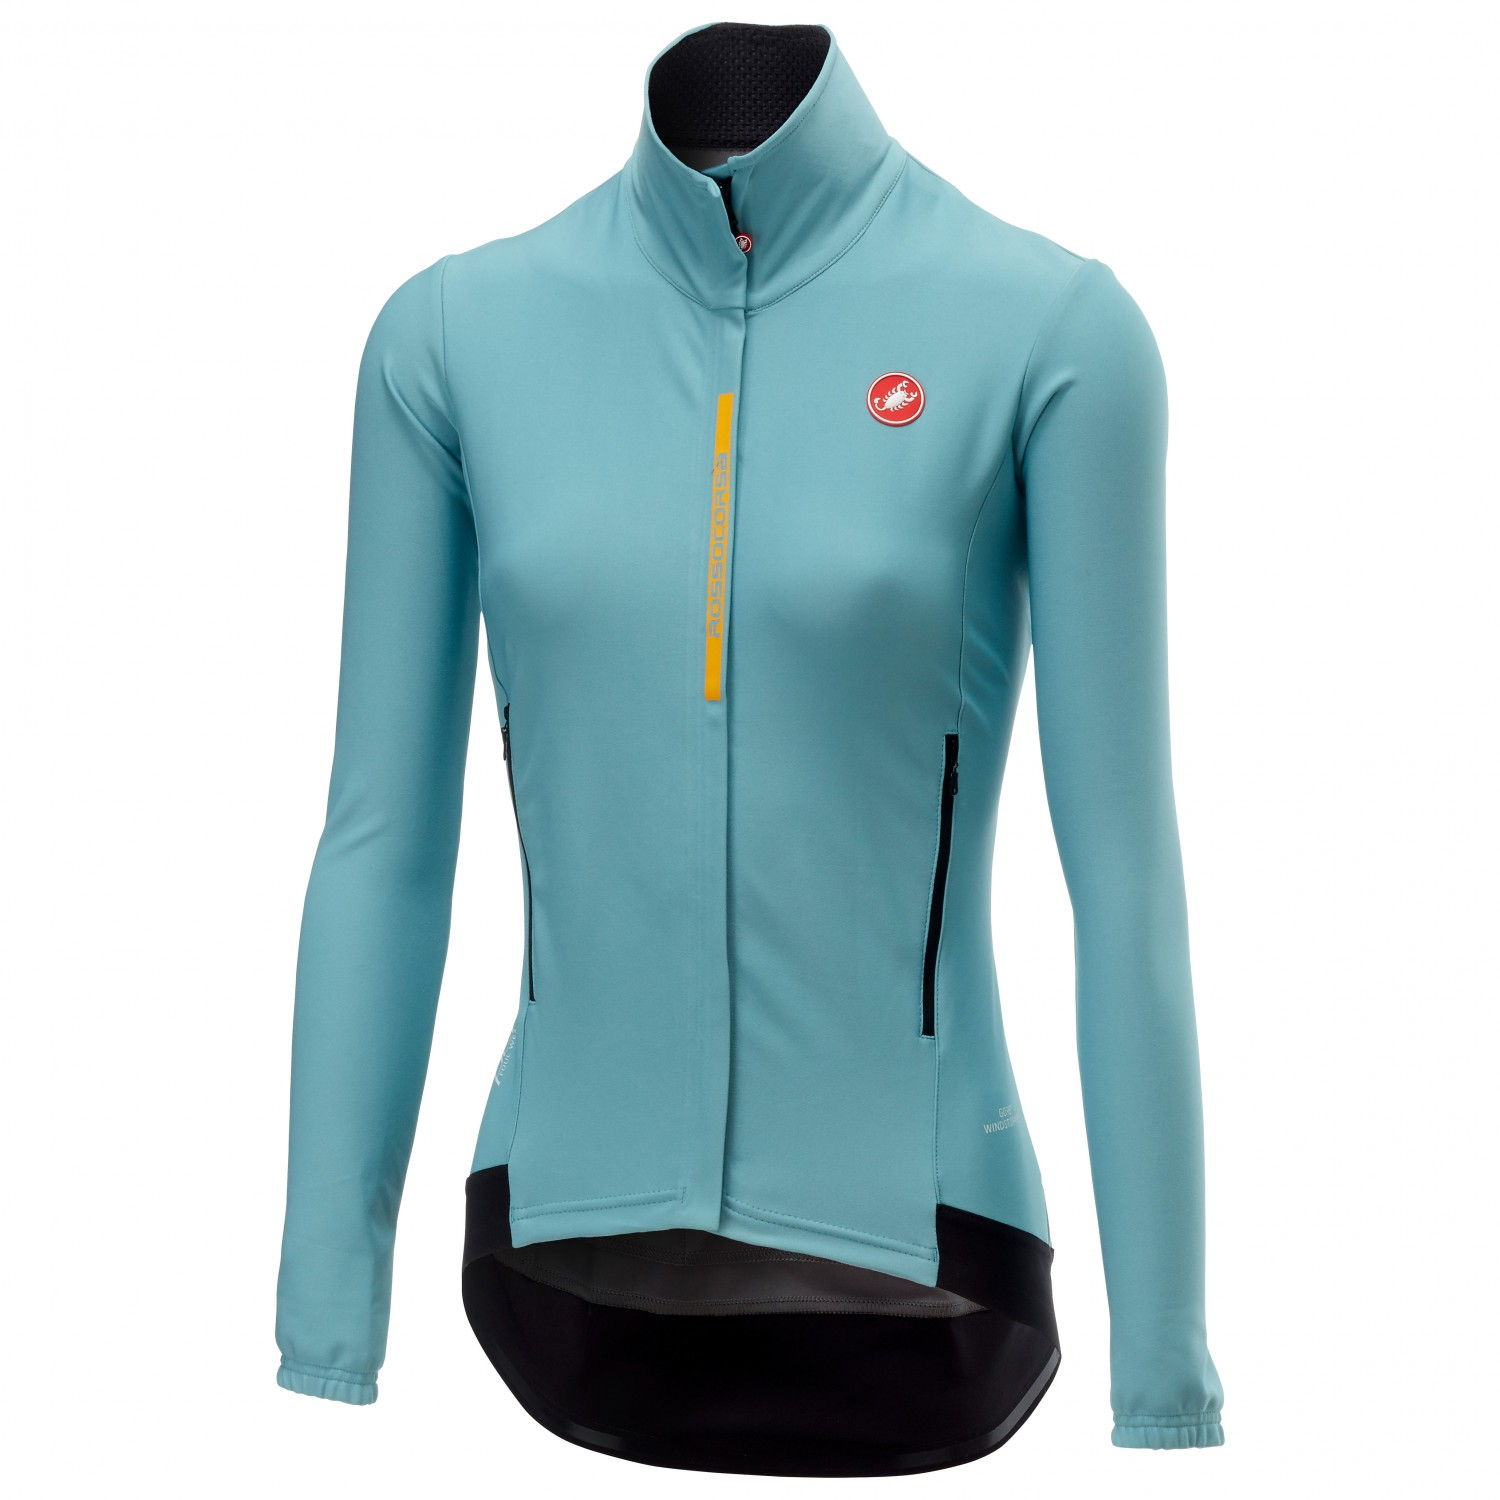 Castelli - Women s Perfetto Long Sleeve - Bike jacket ... e424f885c